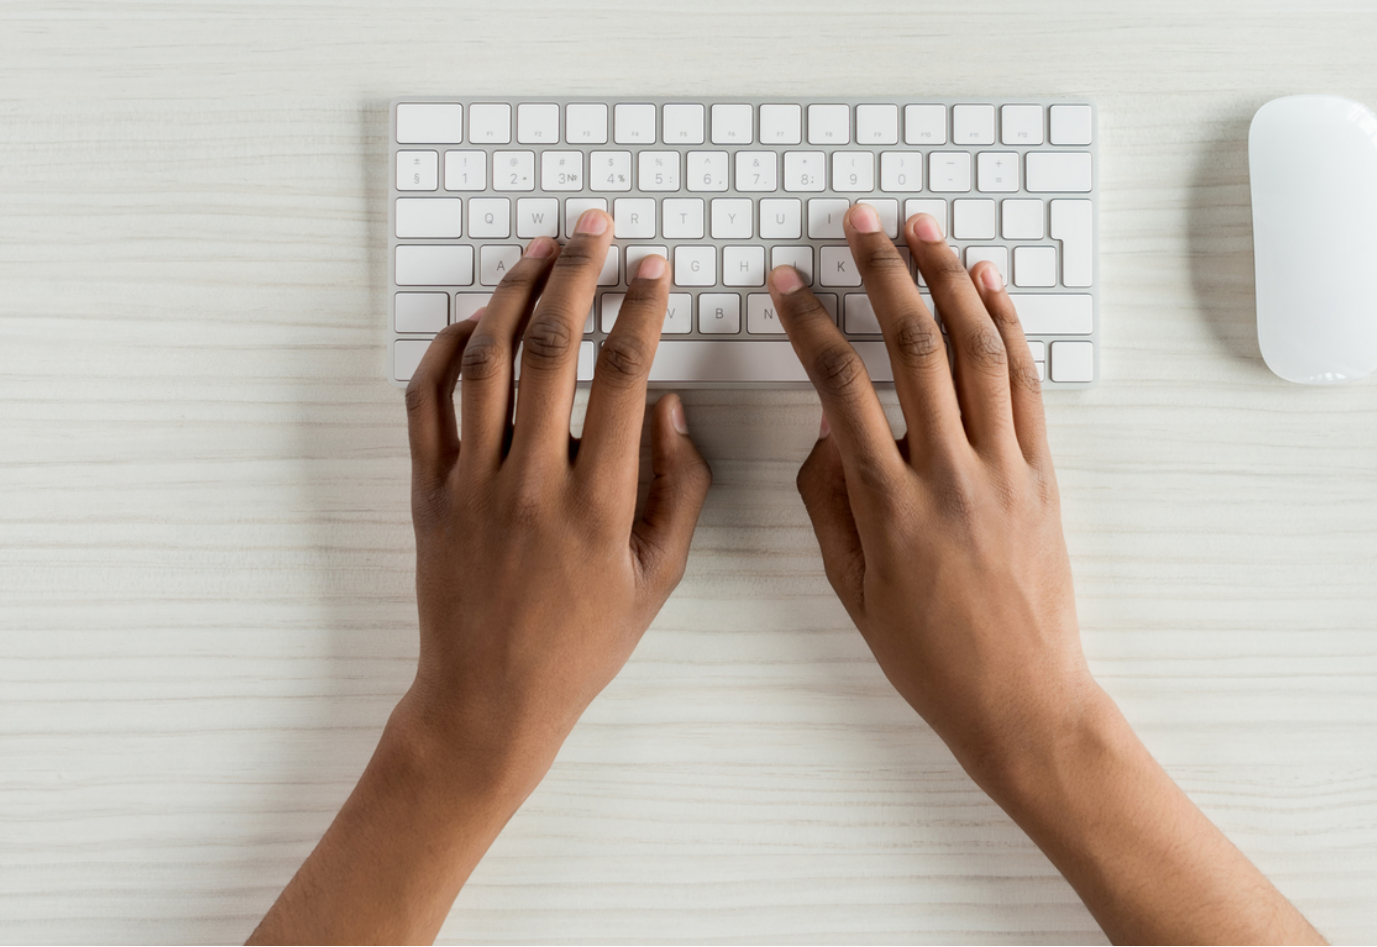 Attendees message – hands on a laptop keyboard – will be replaced by African American hands. Shows how anyone can take our course anywhere